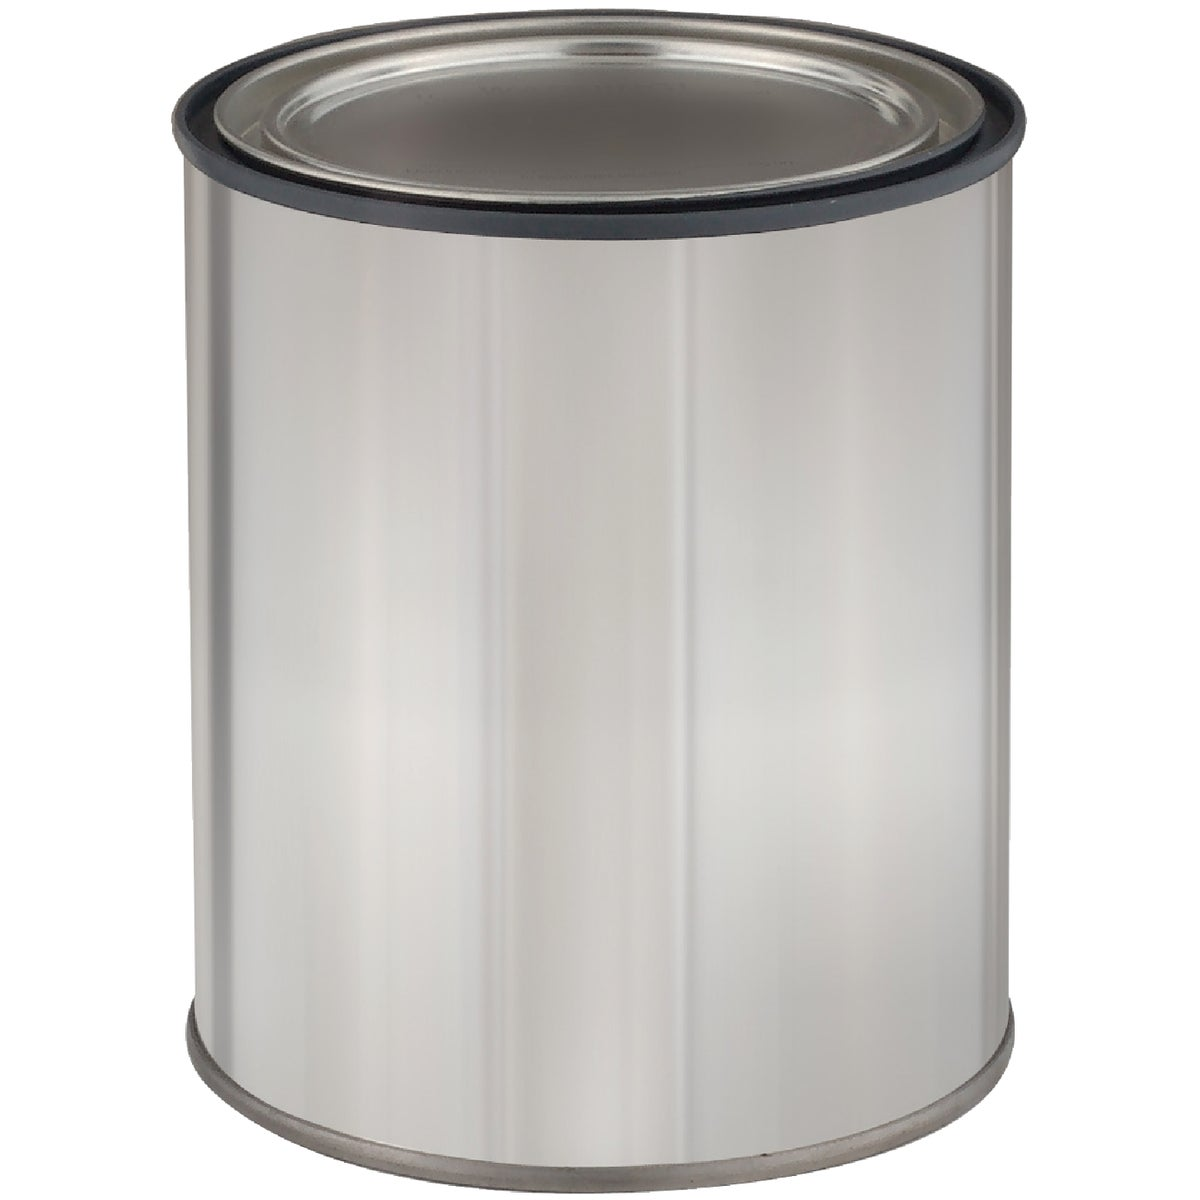 EMPTY QUART PAINT CAN - 007.0027318.005 by Valspar Corp